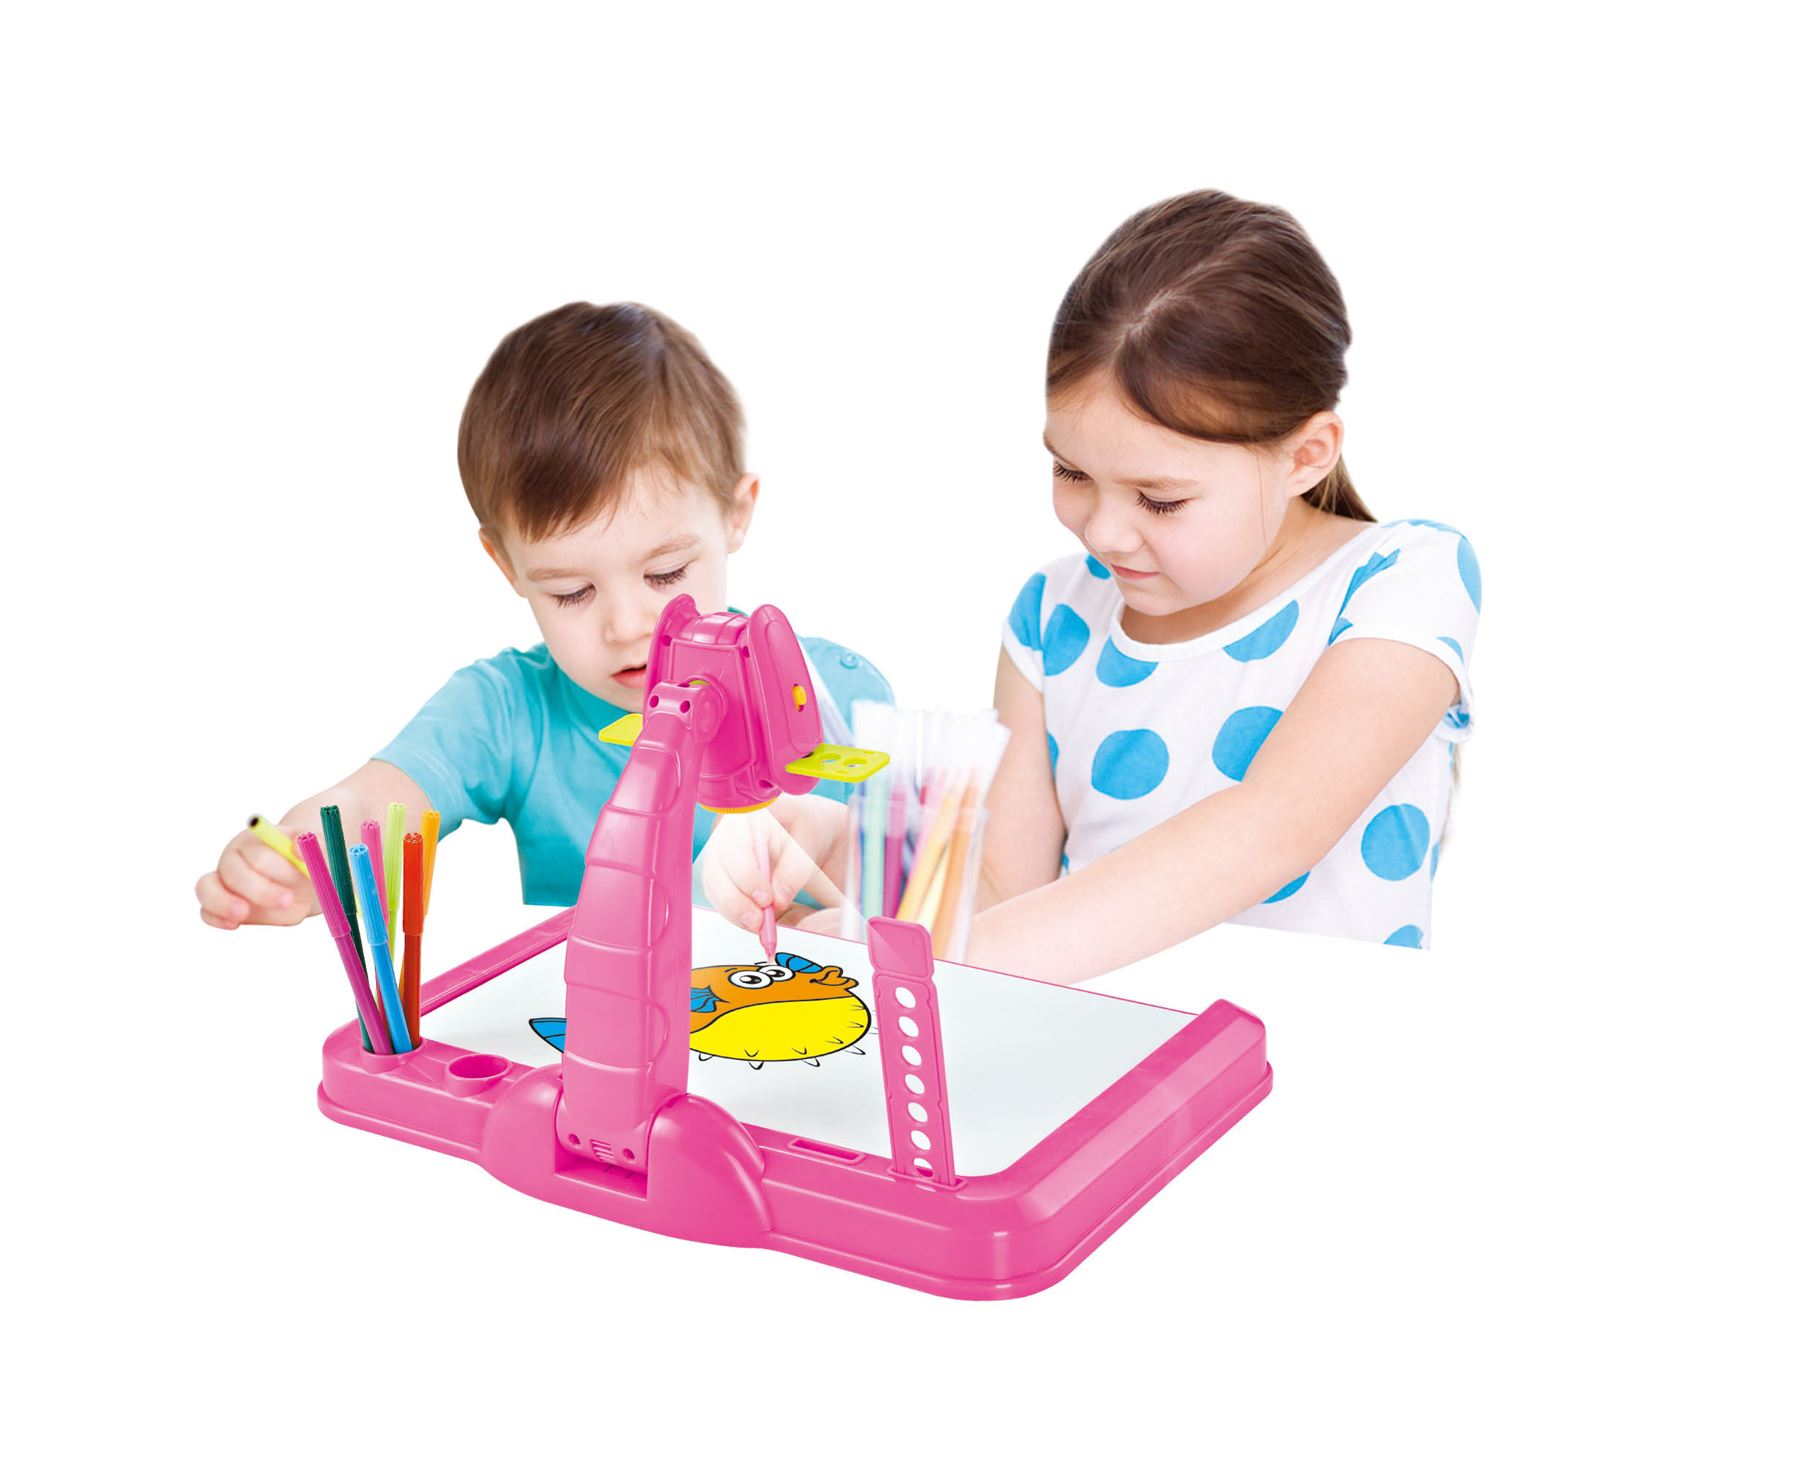 Vinsani Childrens Projector Colouring Amp Learning Activity